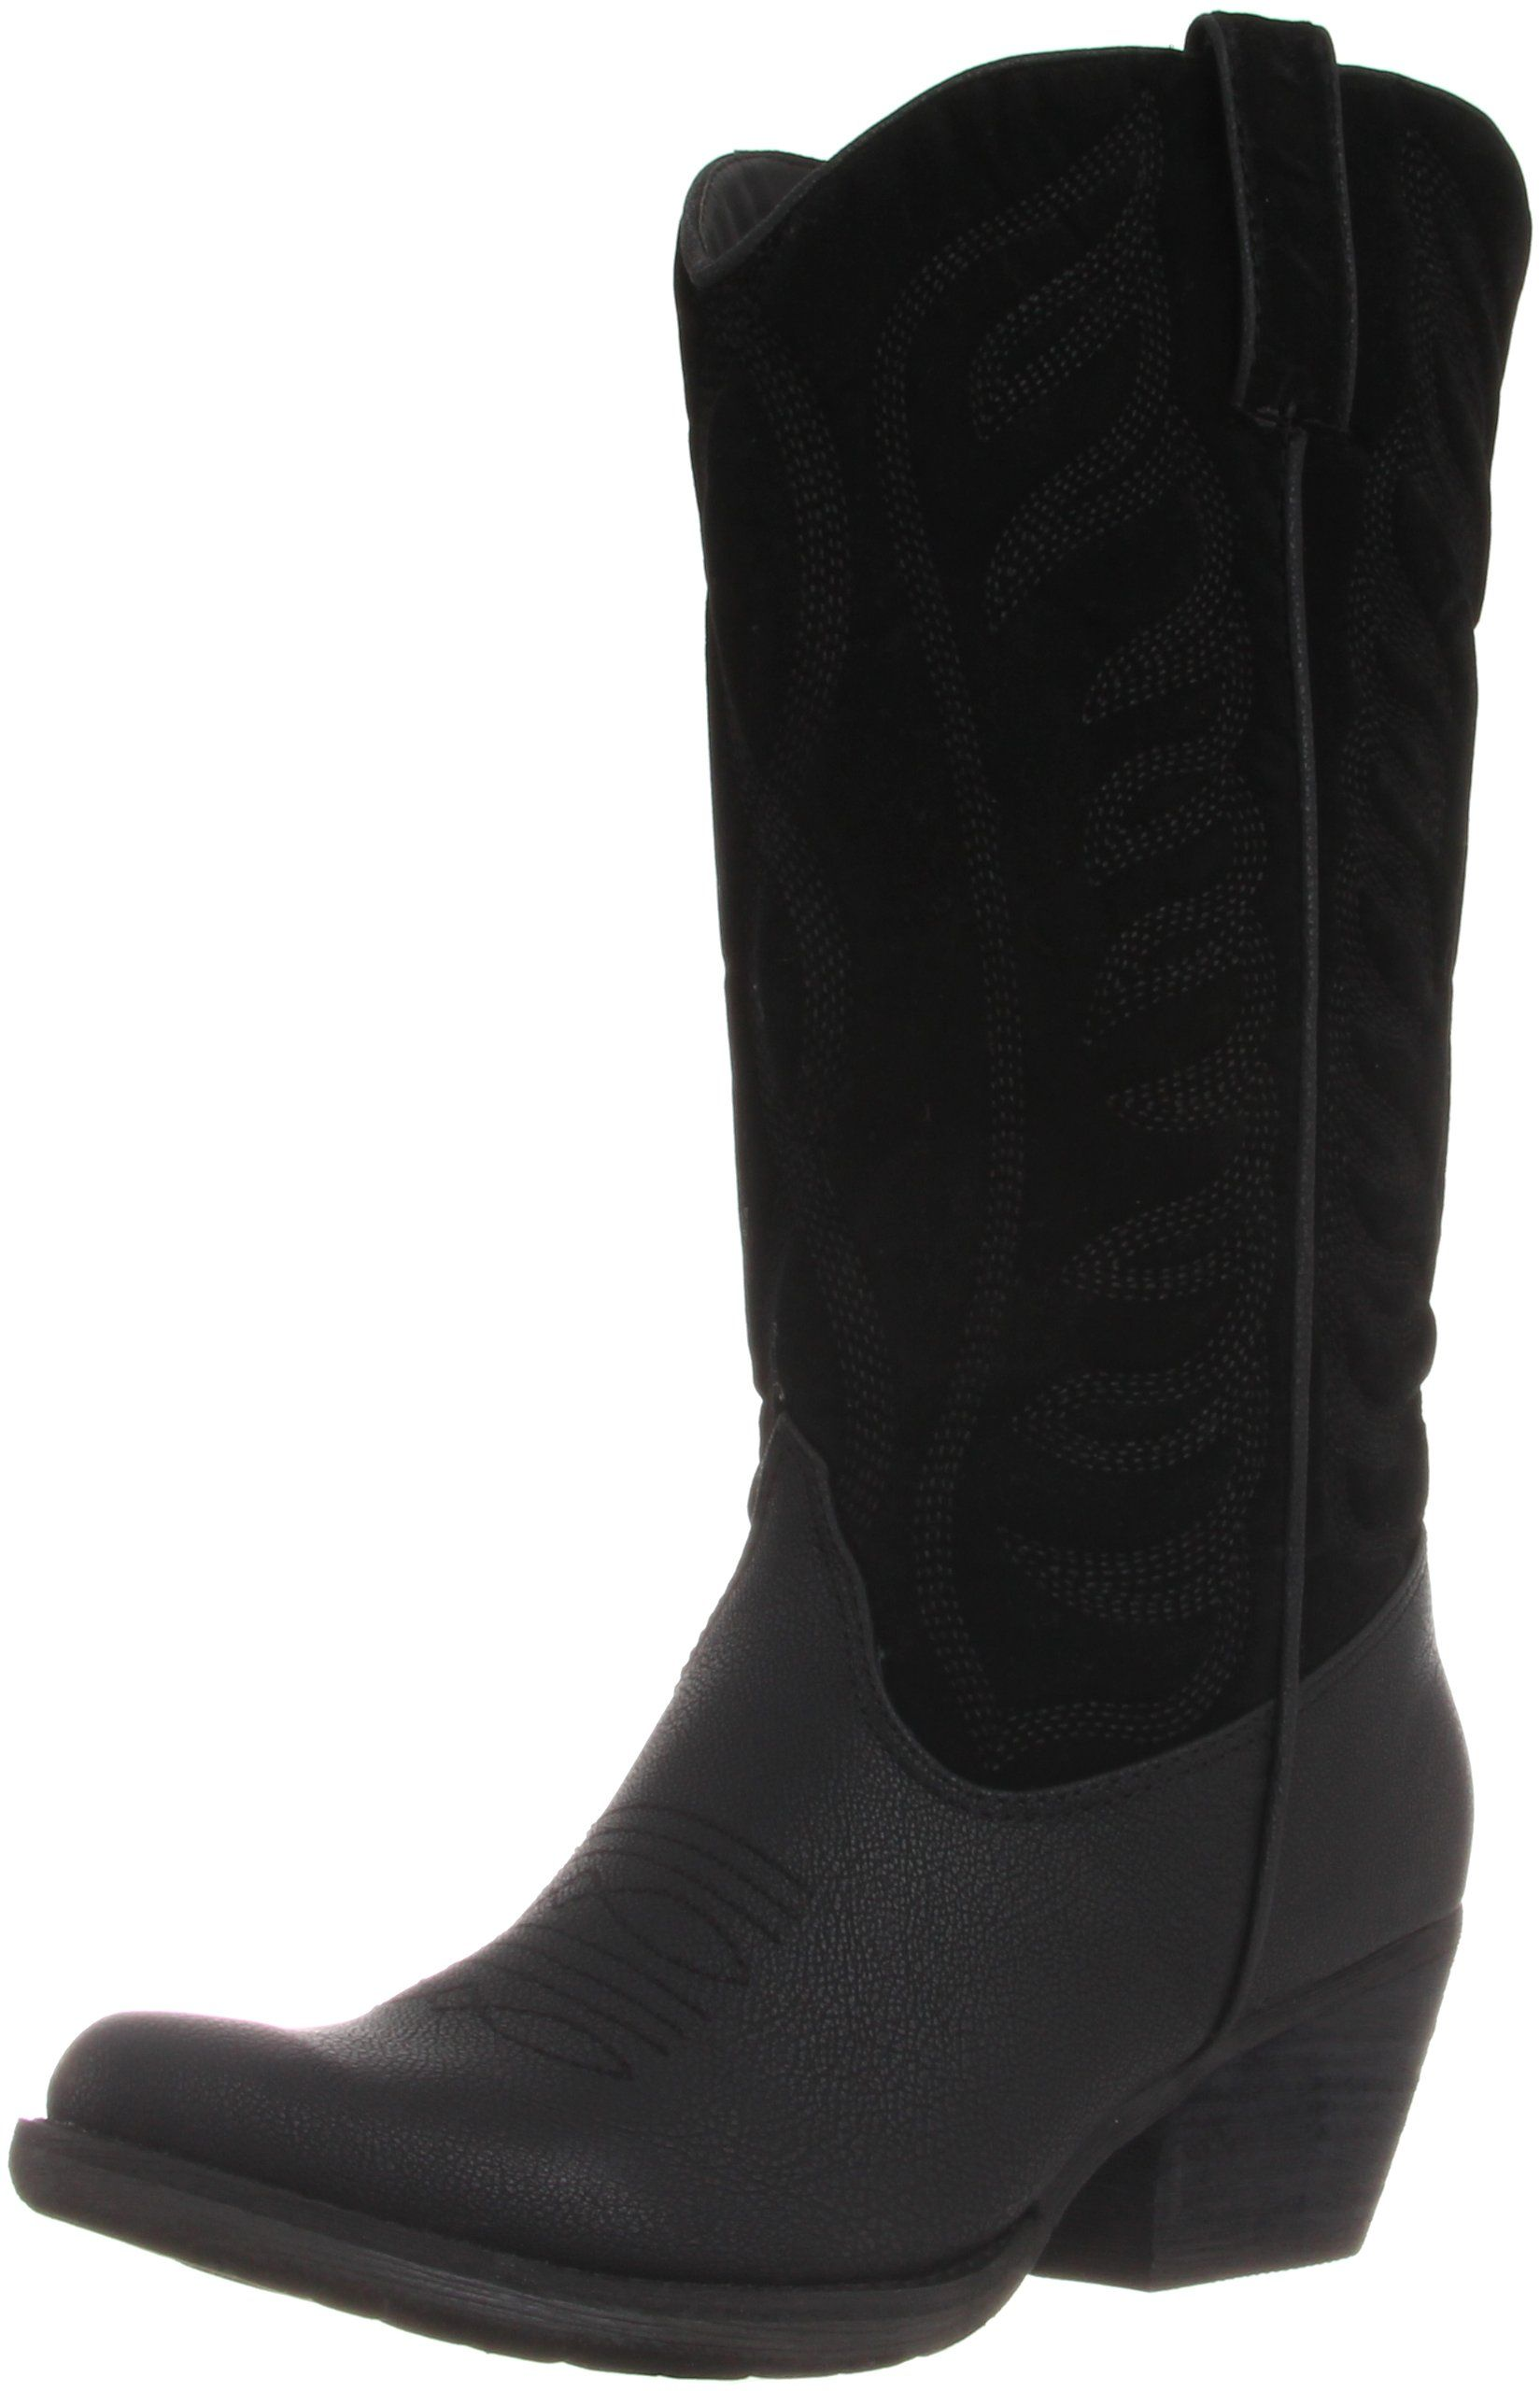 Women's Ingrain Boot